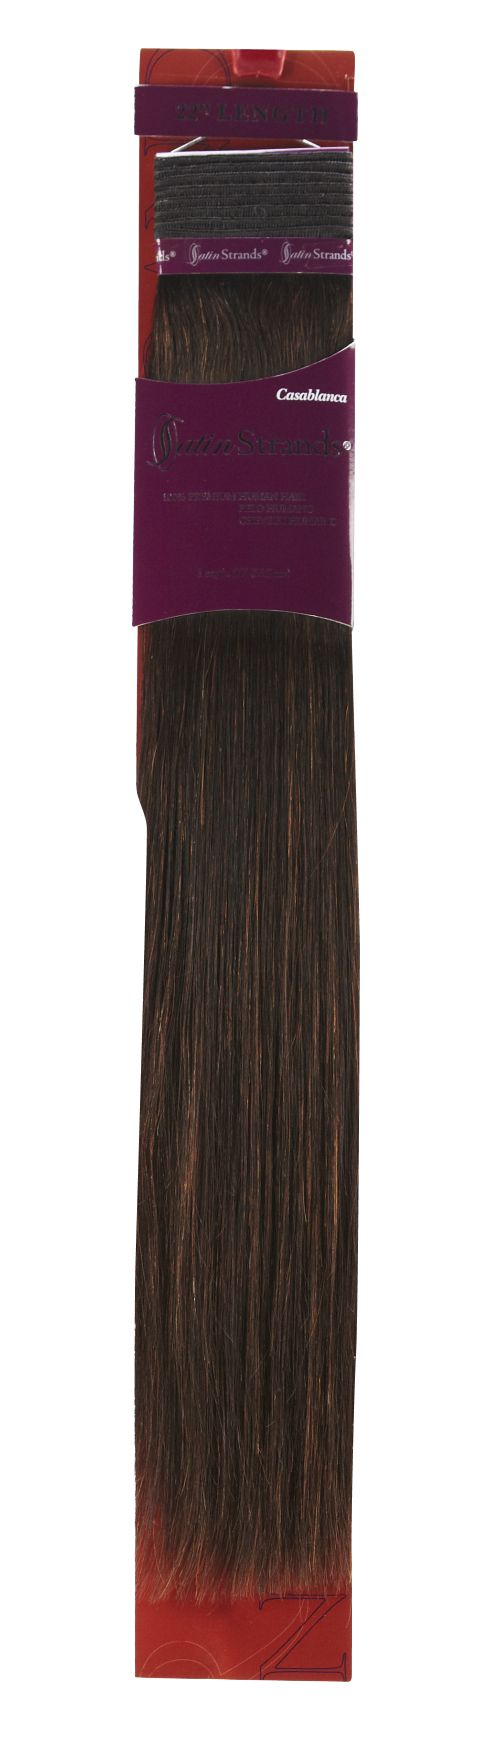 Extension Hair Satin Strand 15